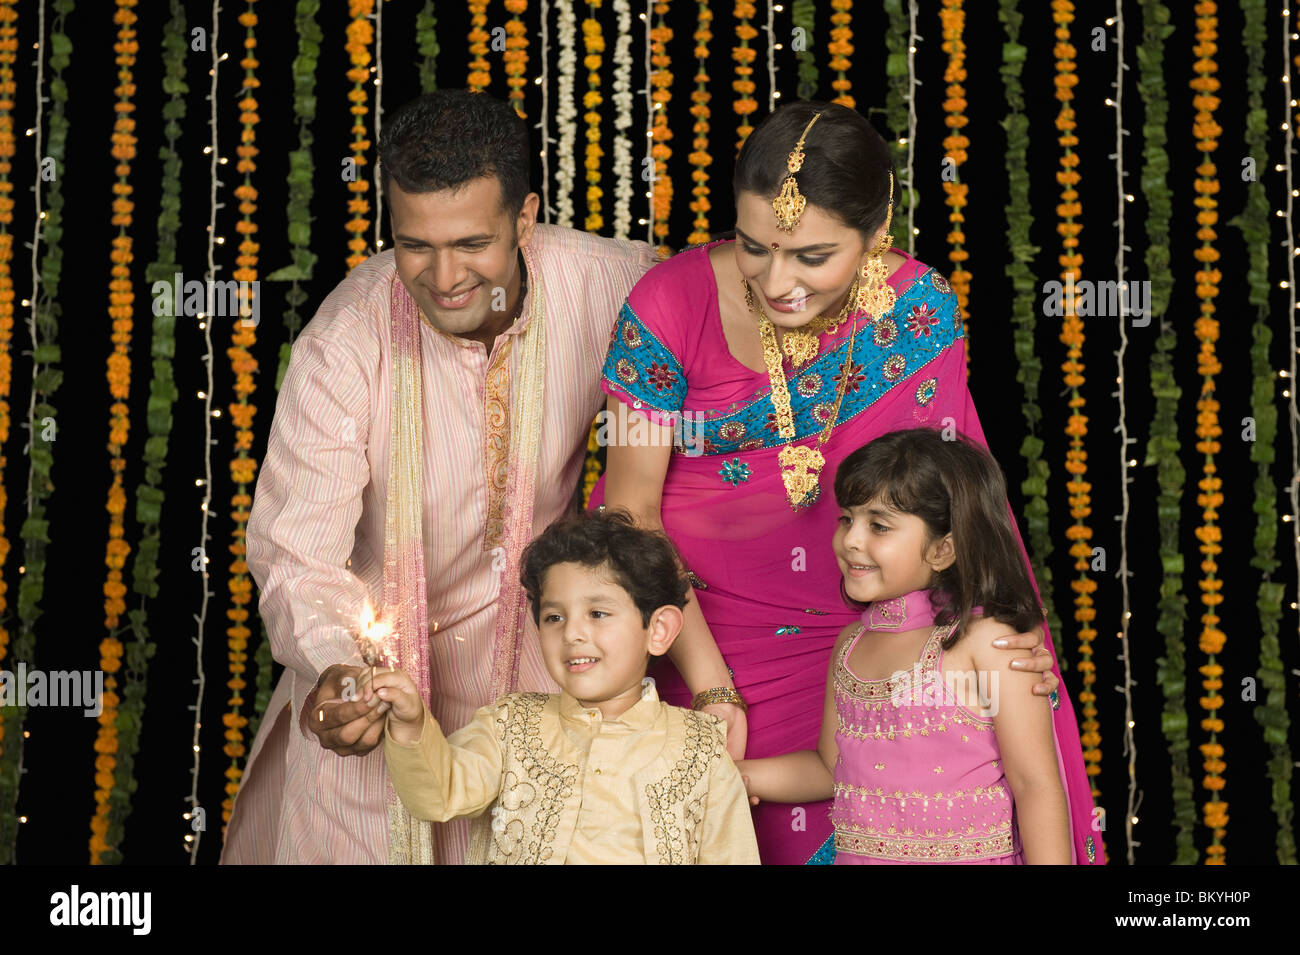 Family celebrating Diwali Stock Photo